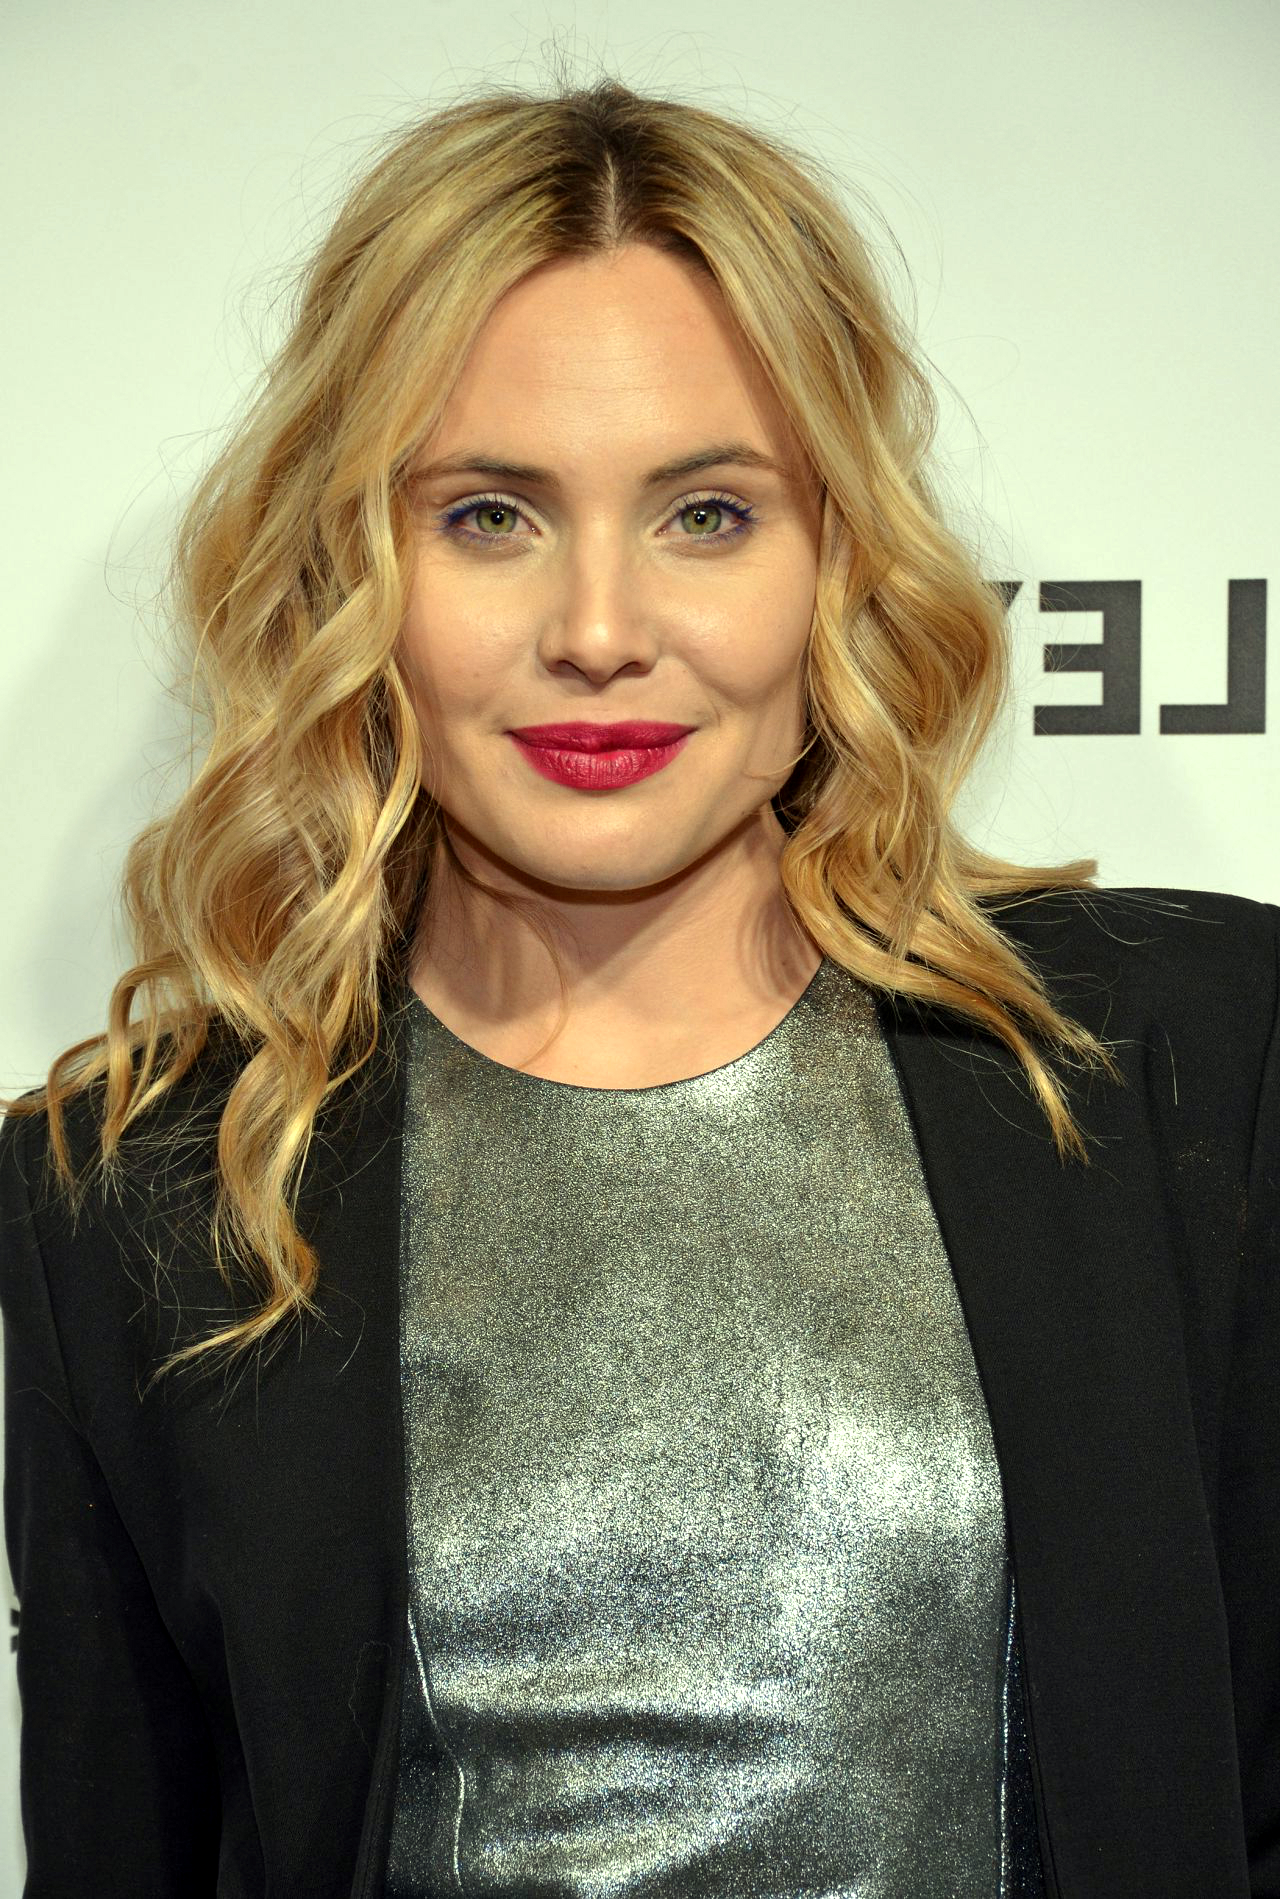 Leah pipes hd wallpapers